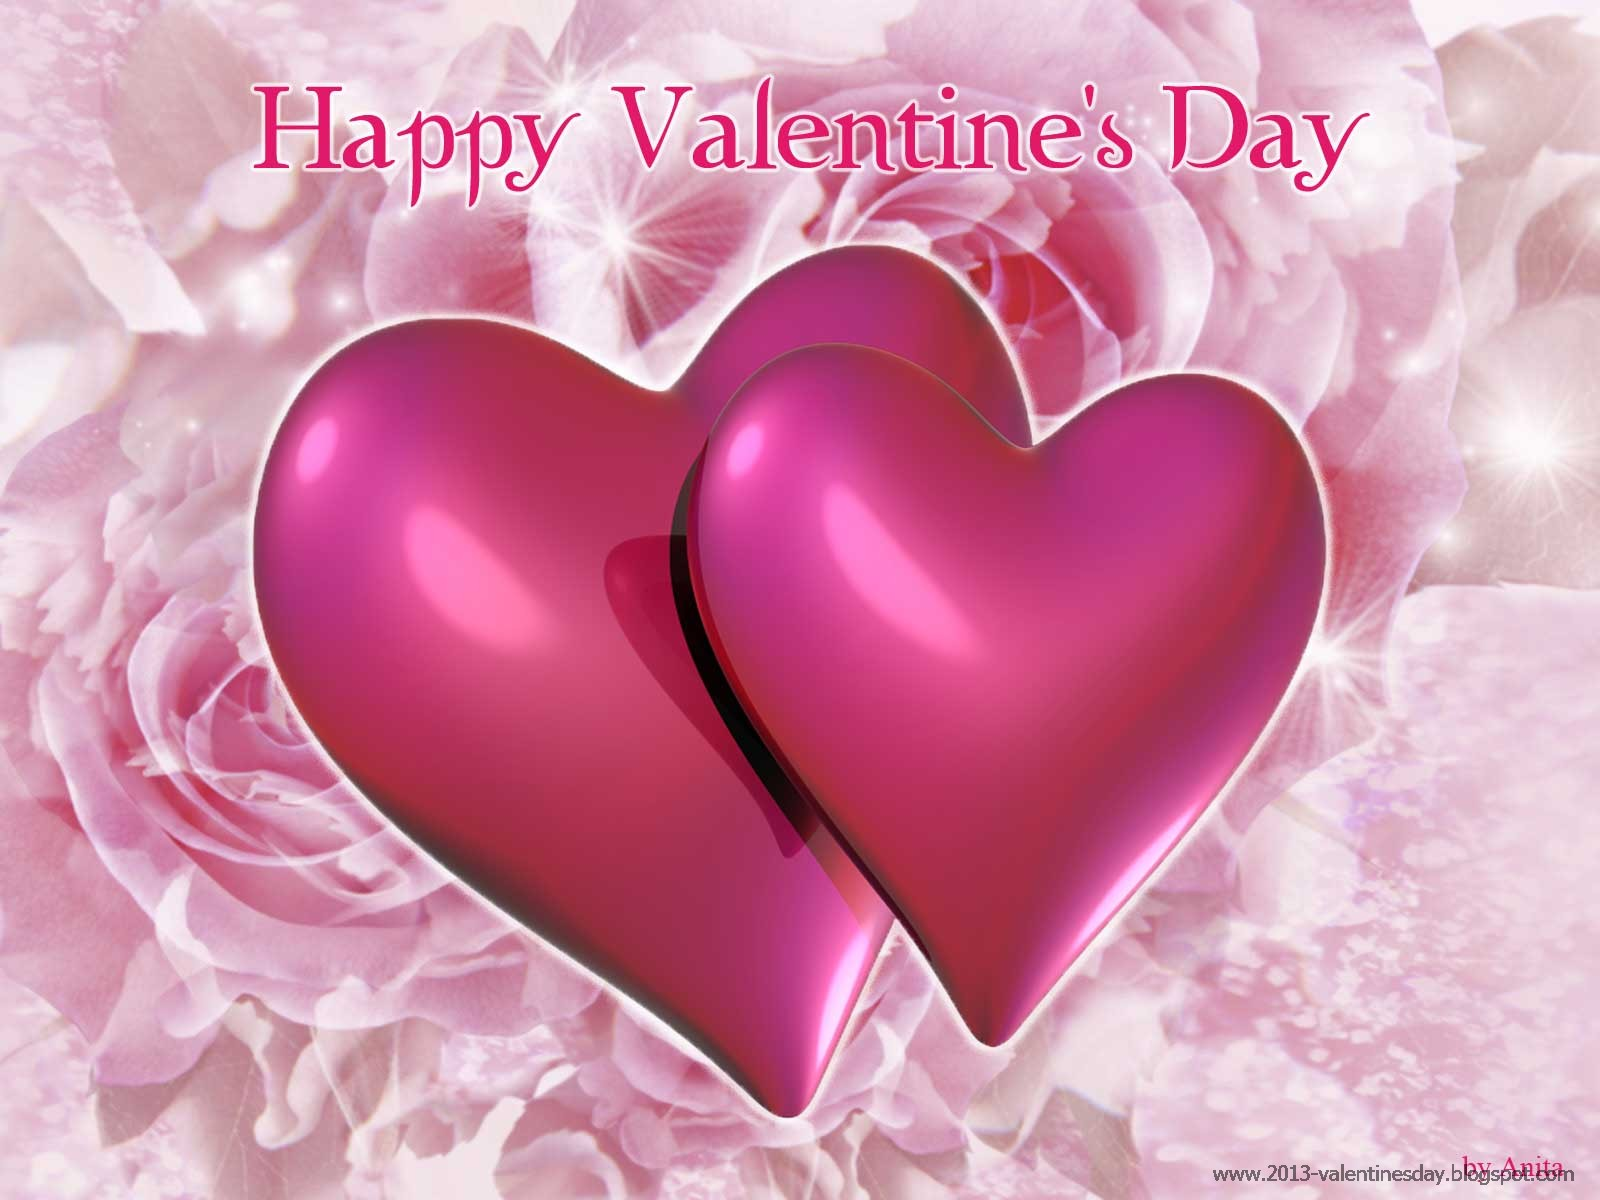 Happy Valentines day 2016 HD wallpapers 1024px 1920px 1600x1200